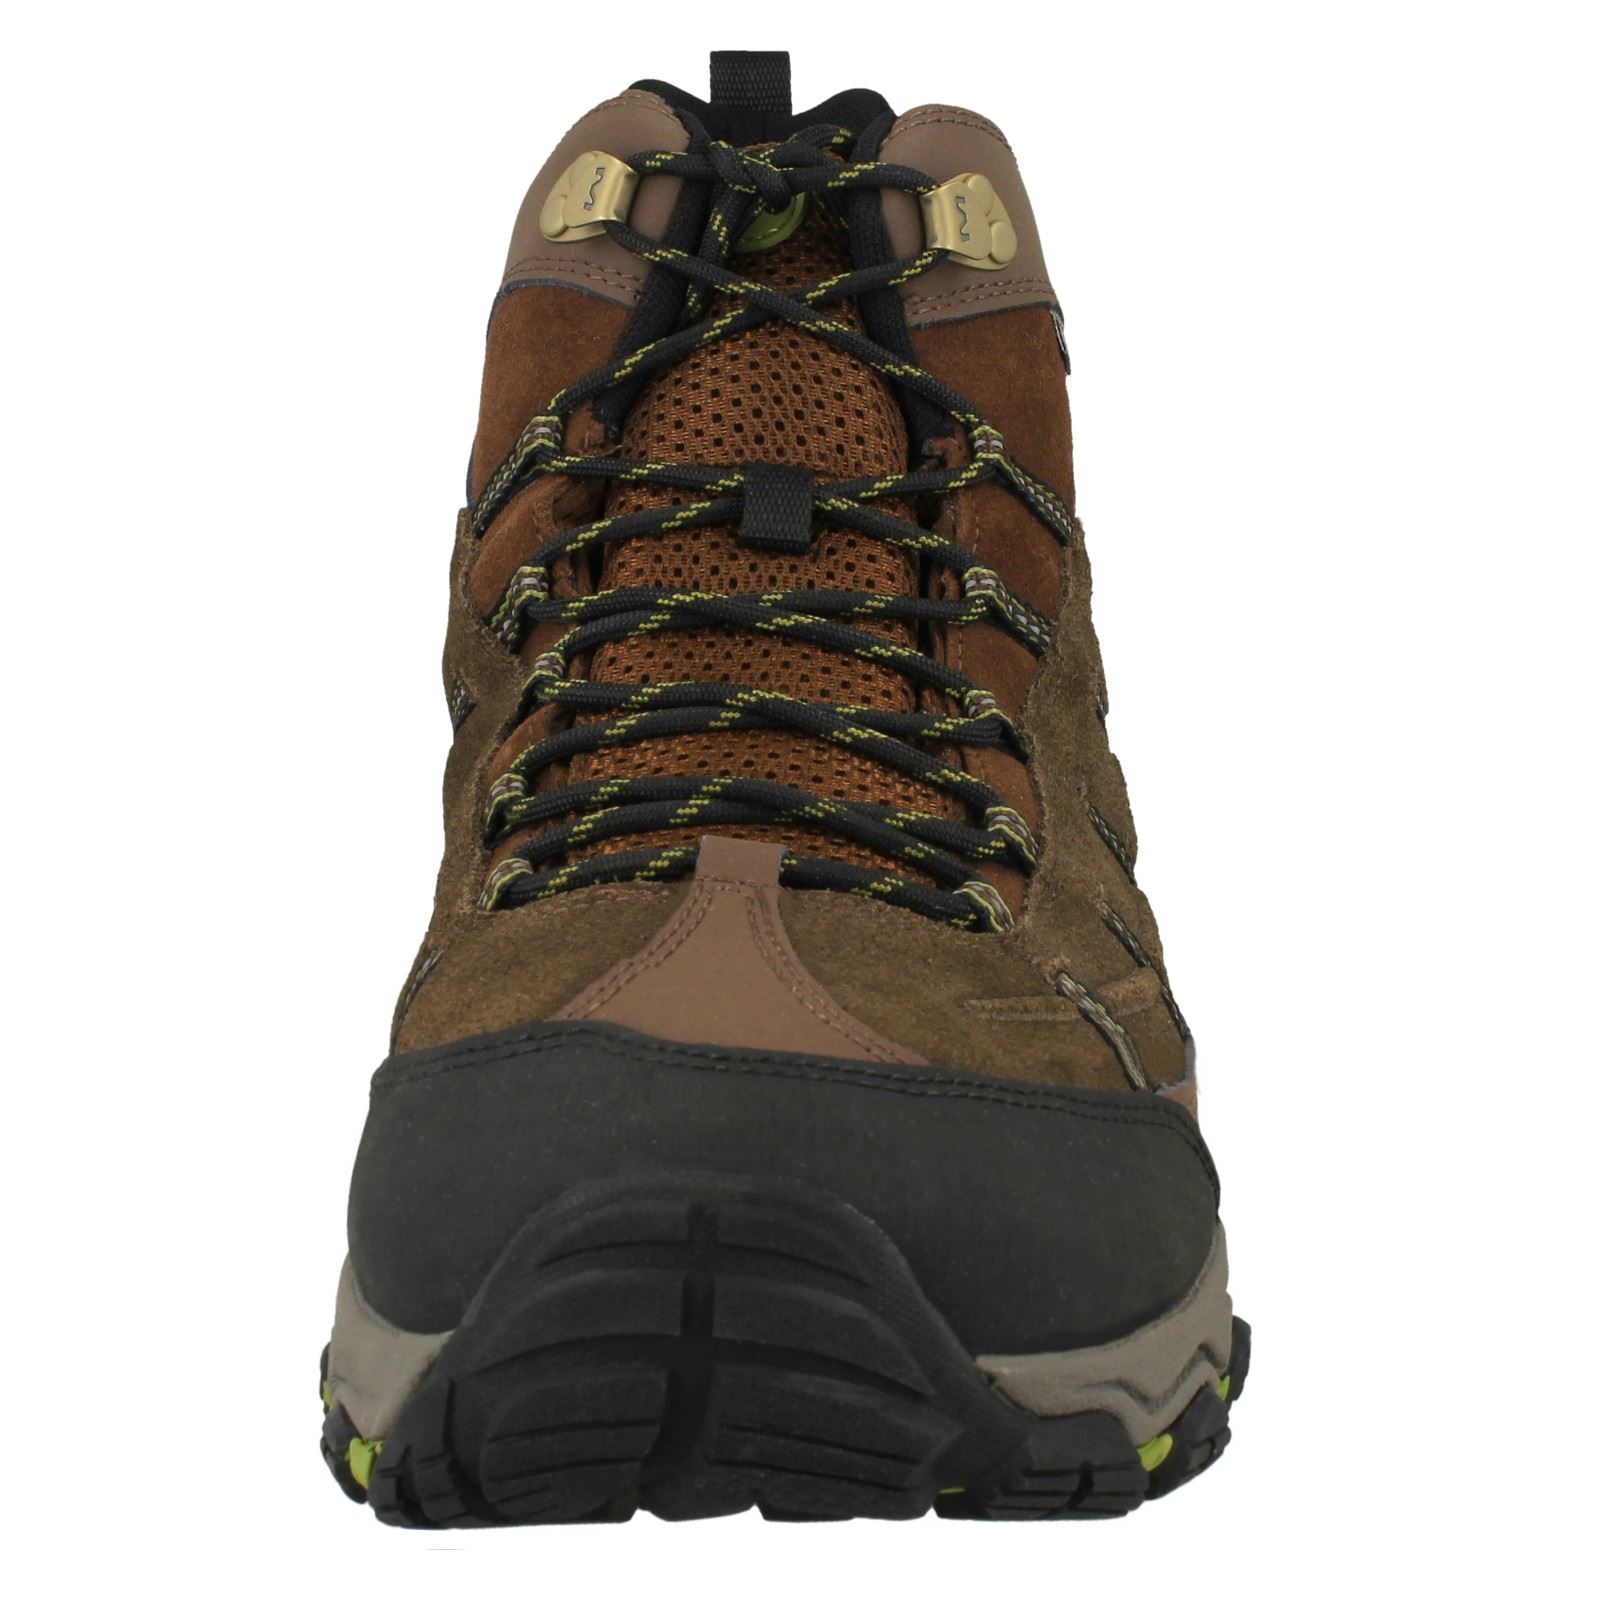 Mens Waterproof Merrell Waterproof Mens Walking Boots 'Terramorph Mid' 614400